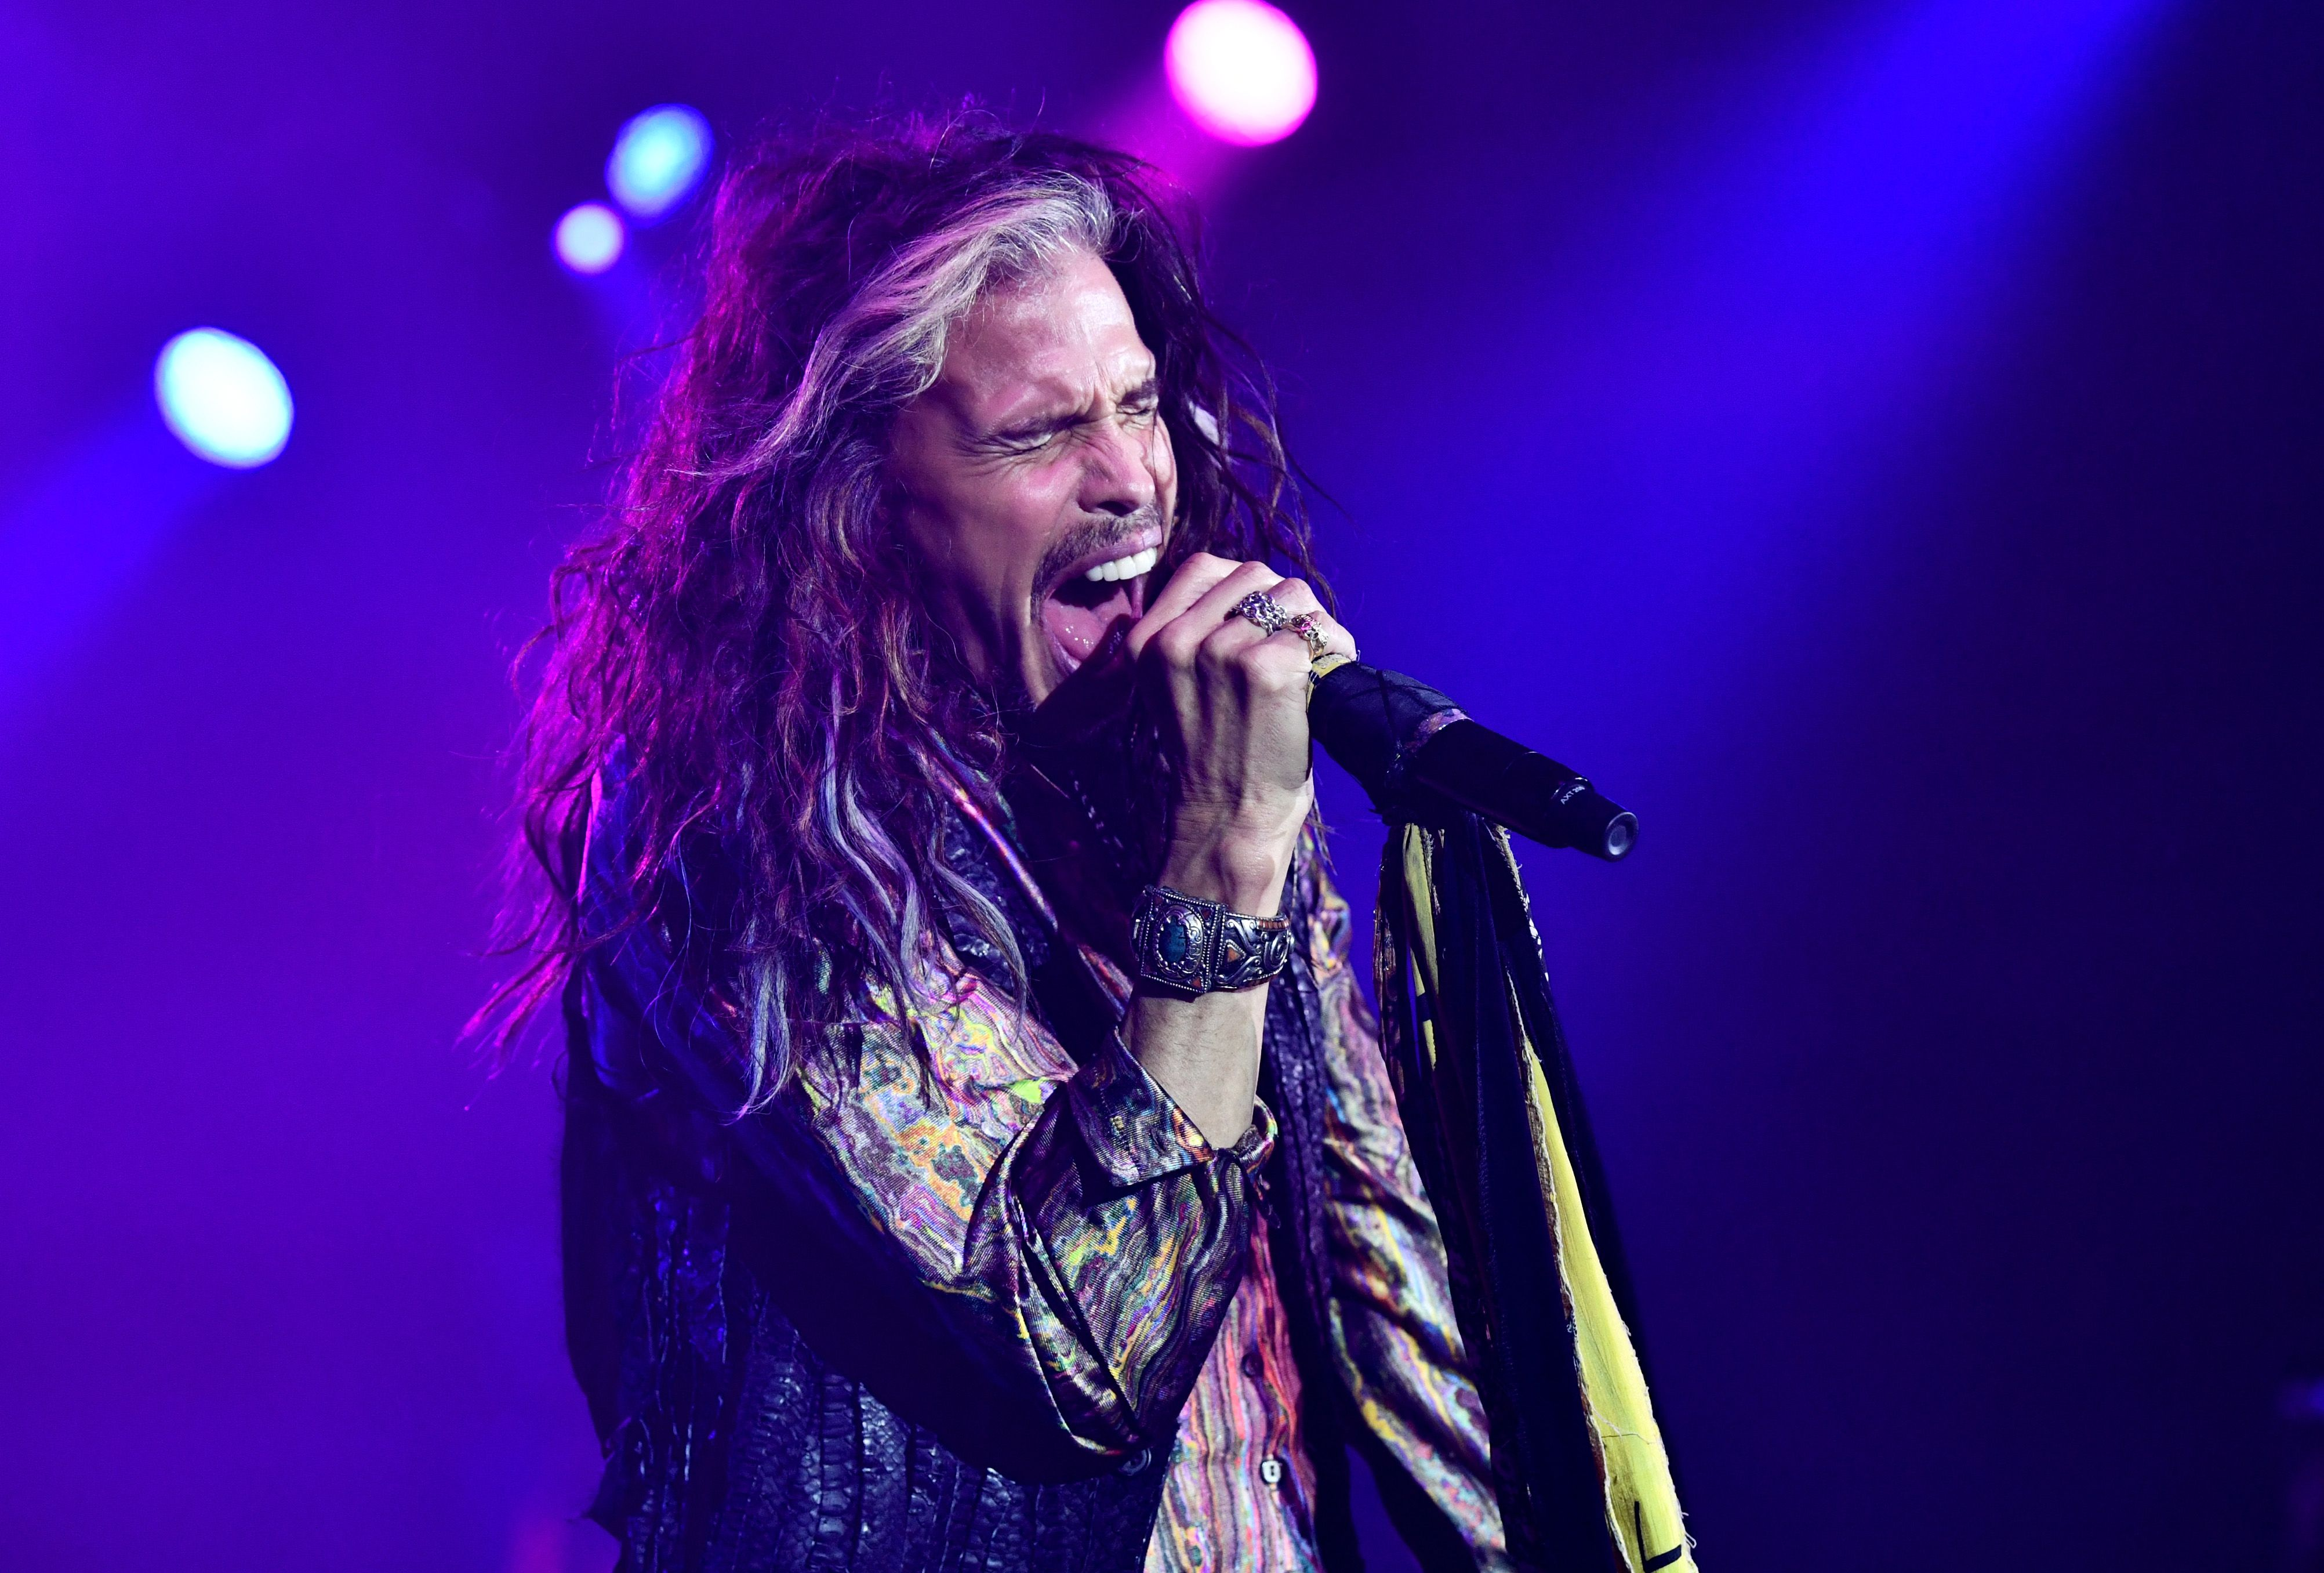 Steven Tyler singing at a show.